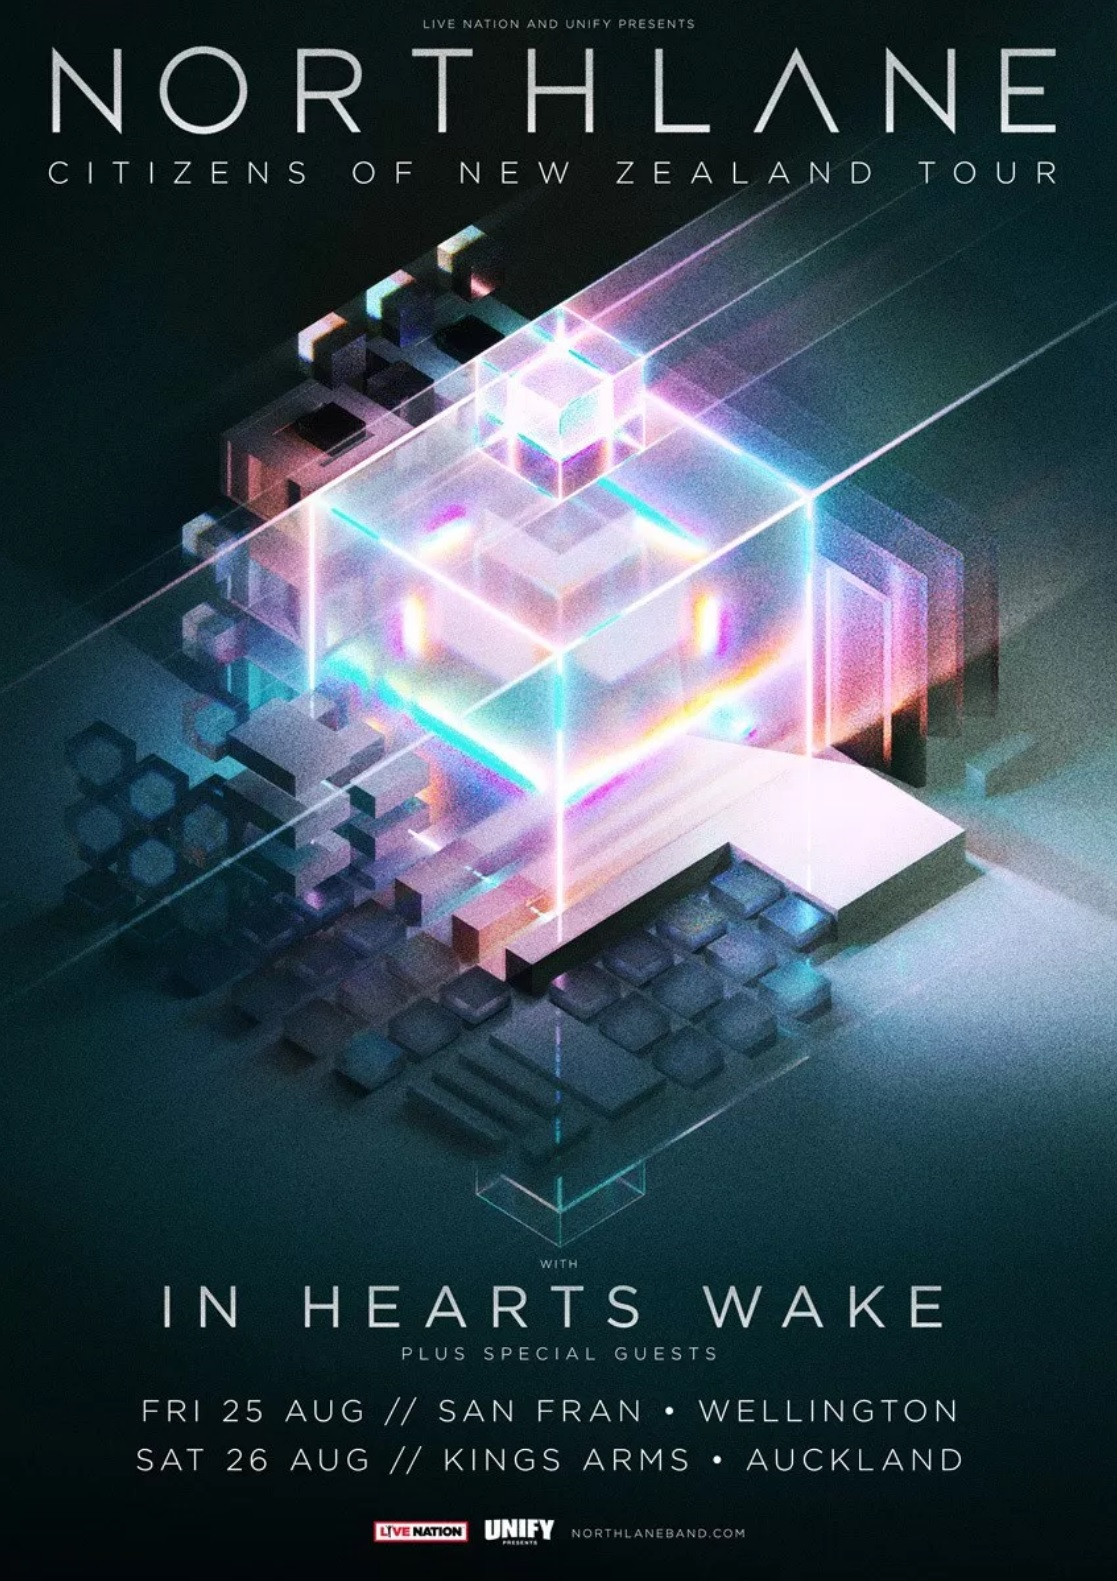 NORTHLANE - KINGS ARMS - Just weeks after the surprise release of their masterful fourth studio albumMesmer, Australian metalcore luminaries NORTHLANEannounce their return to New Zealand this August for two dates with their label cohorts IN HEARTS WAKE.